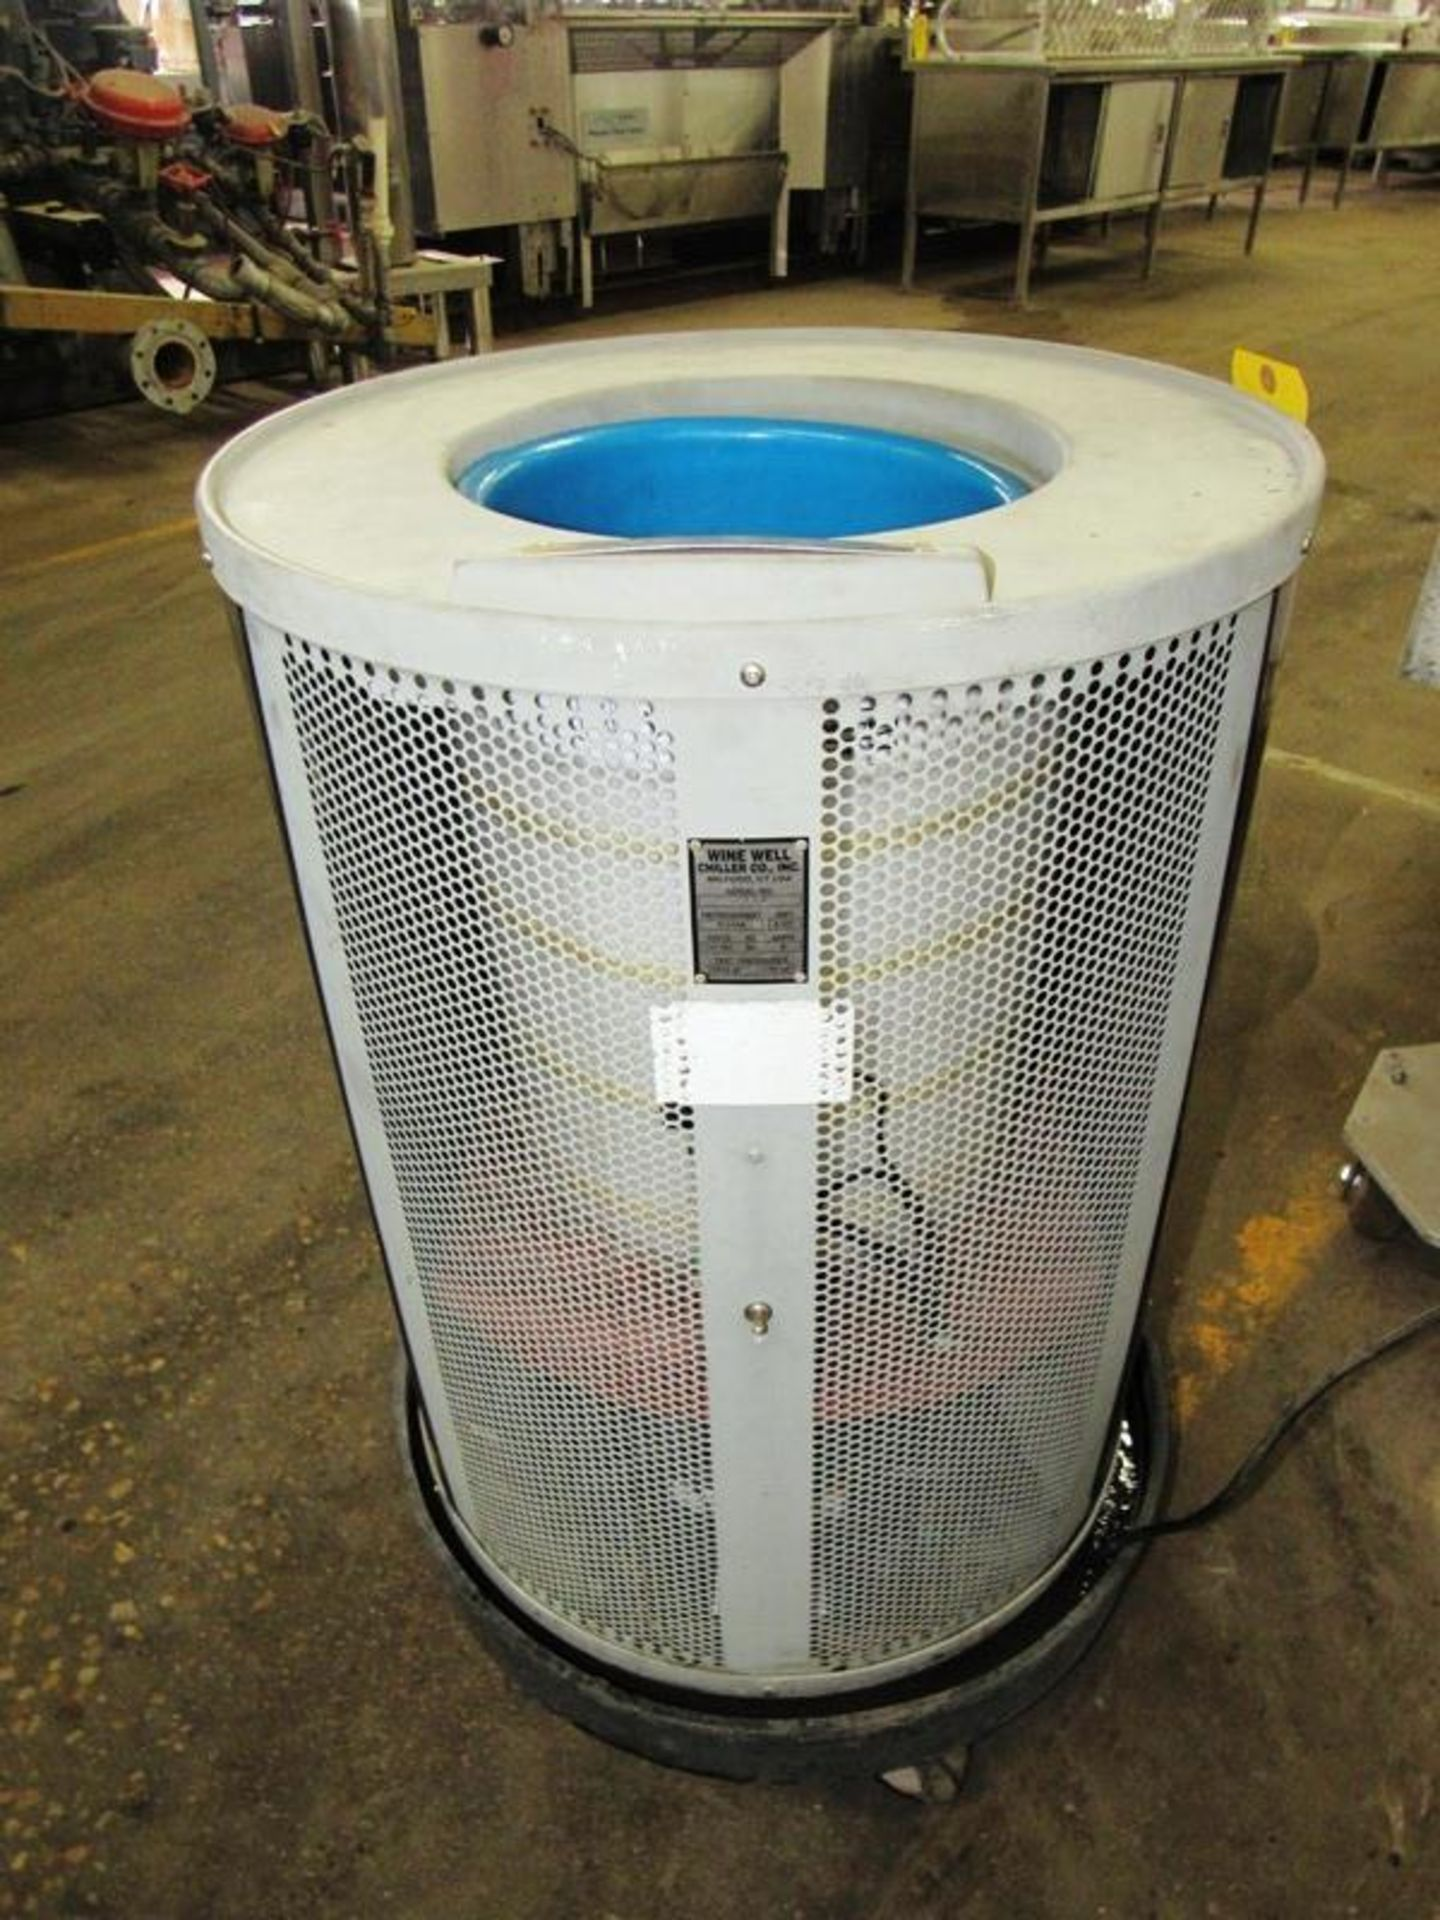 Wine Well Chiller Co. Portable Chilled Water Bath, Ser. #7814, R-134A refrigerant, 115 volts, tested - Image 2 of 6